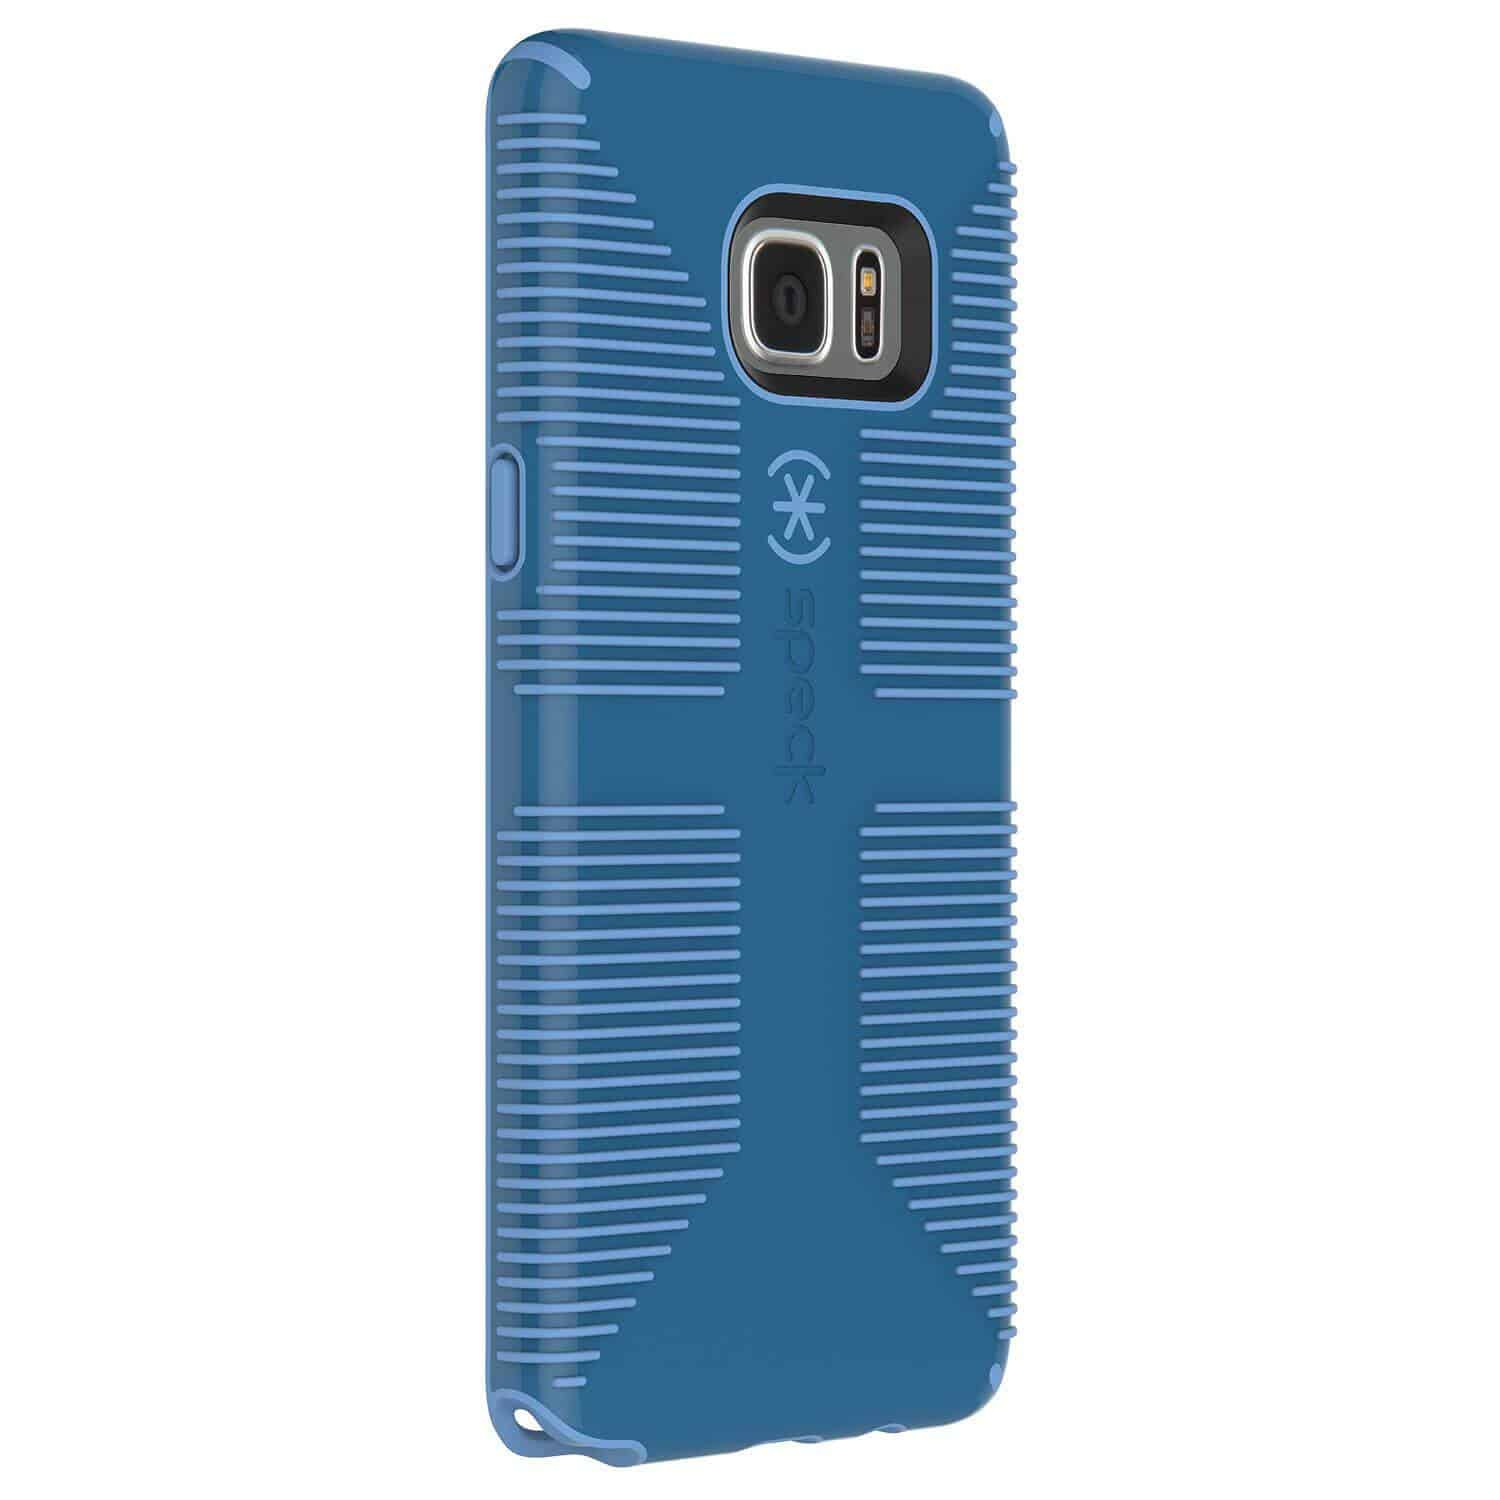 Speck CandyShell Case Galaxy Note 7 KK (1)